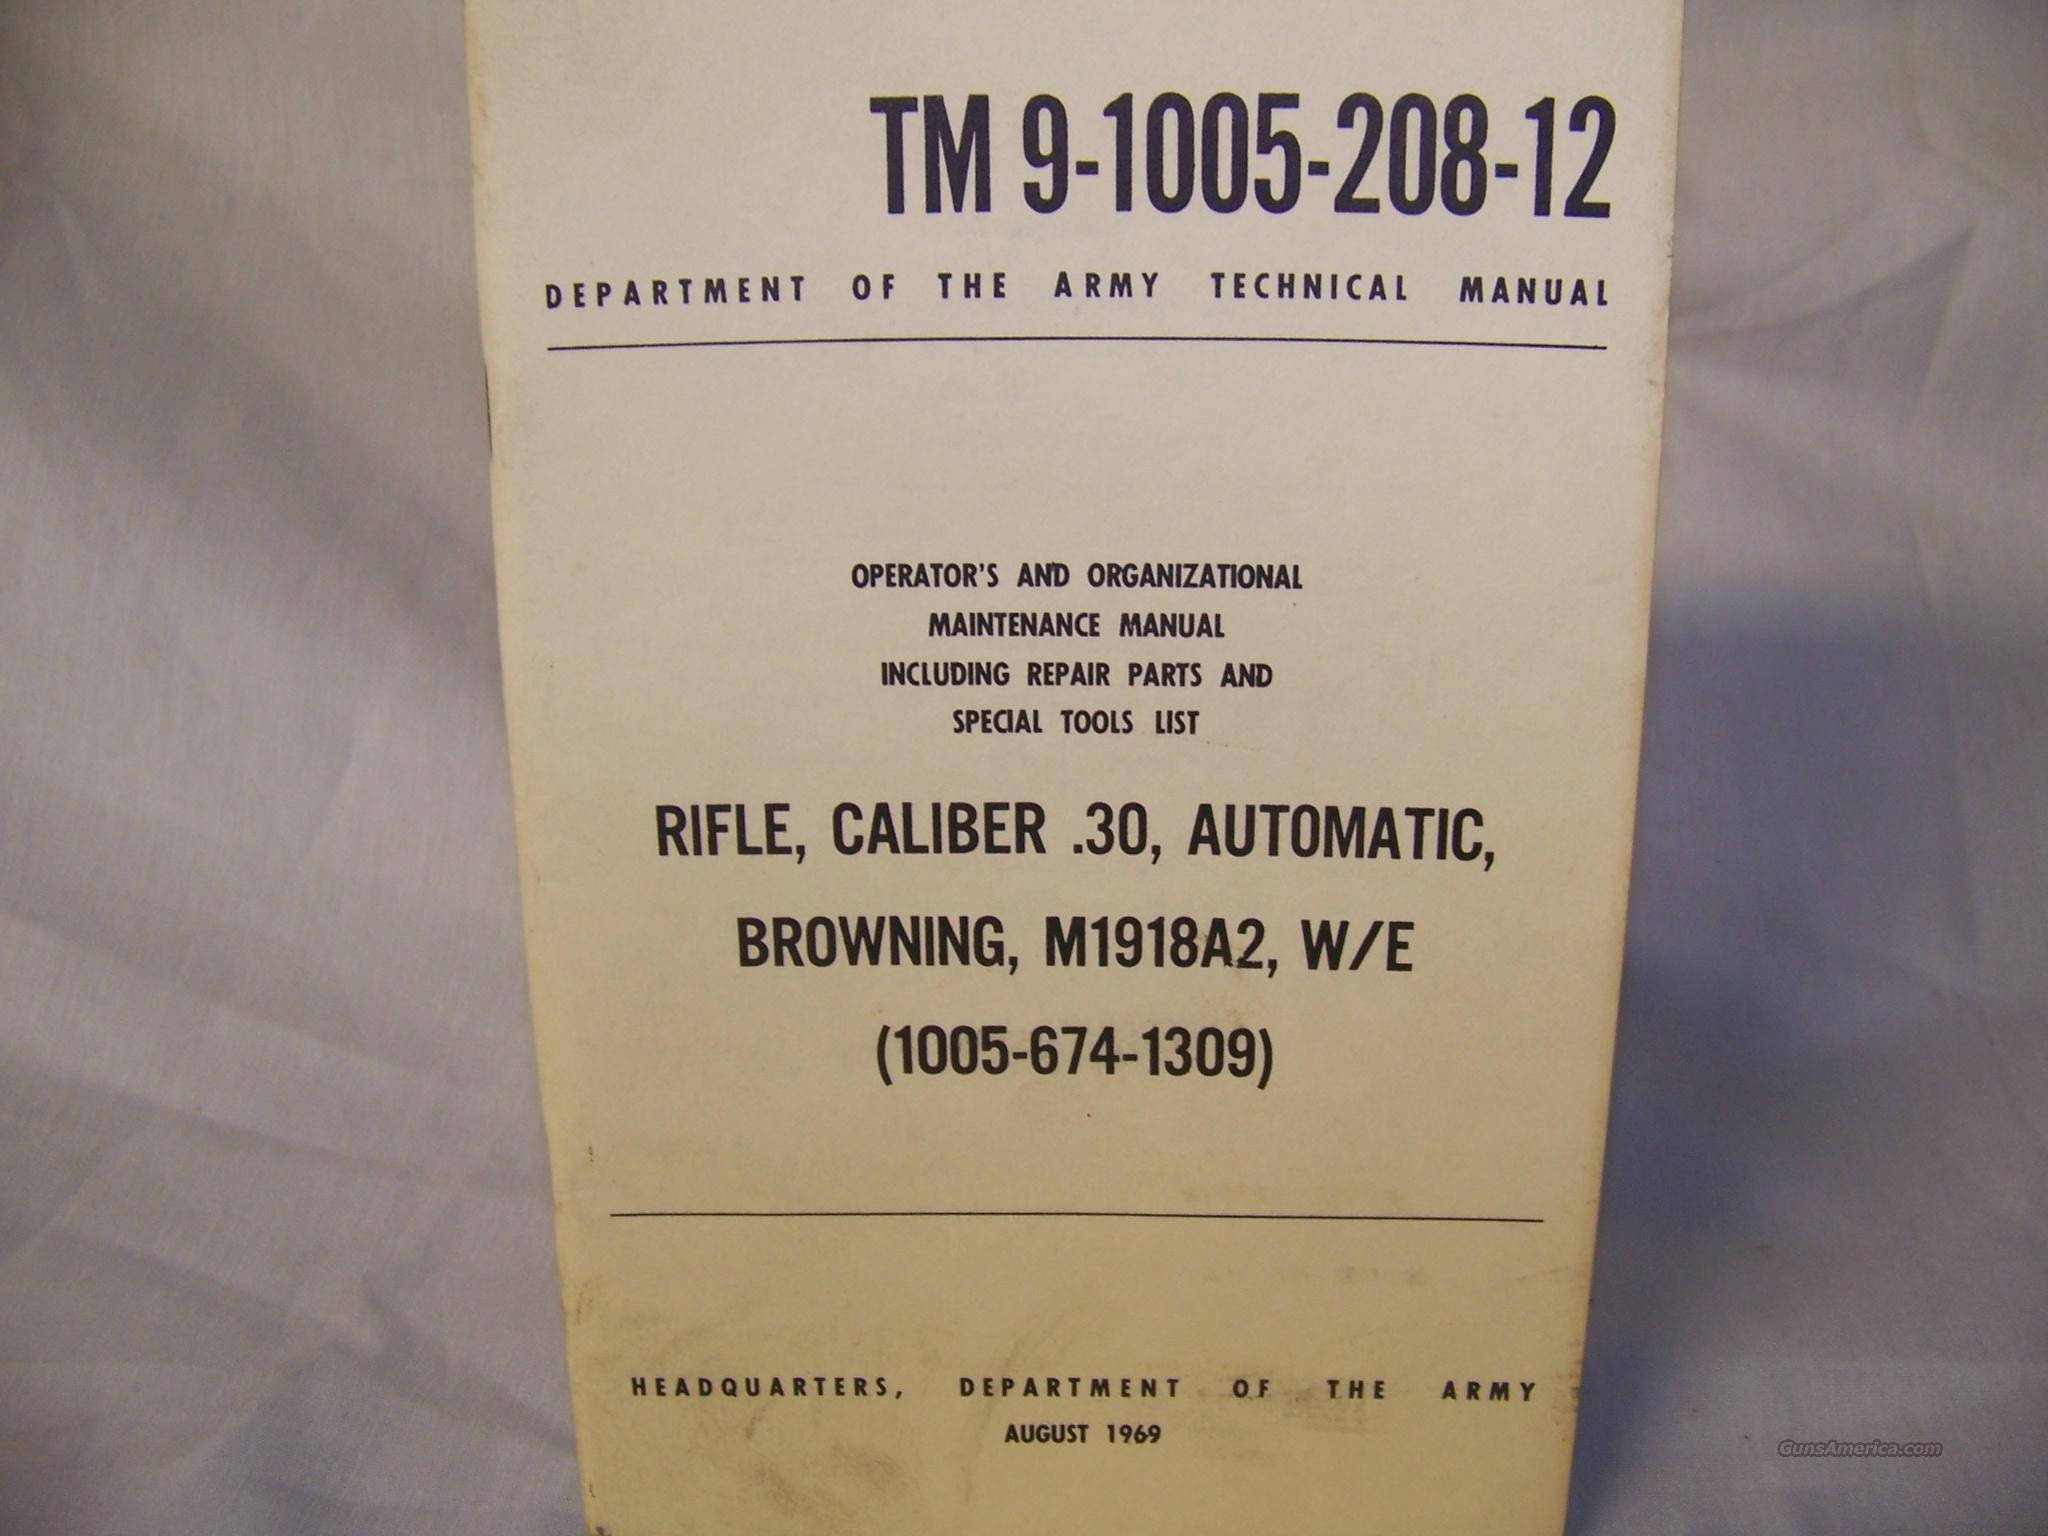 Browning 1918A2  Army Manual  Guns > Rifles > Class 3 Rifles > Class 3 Dealer/Law Enf. Only